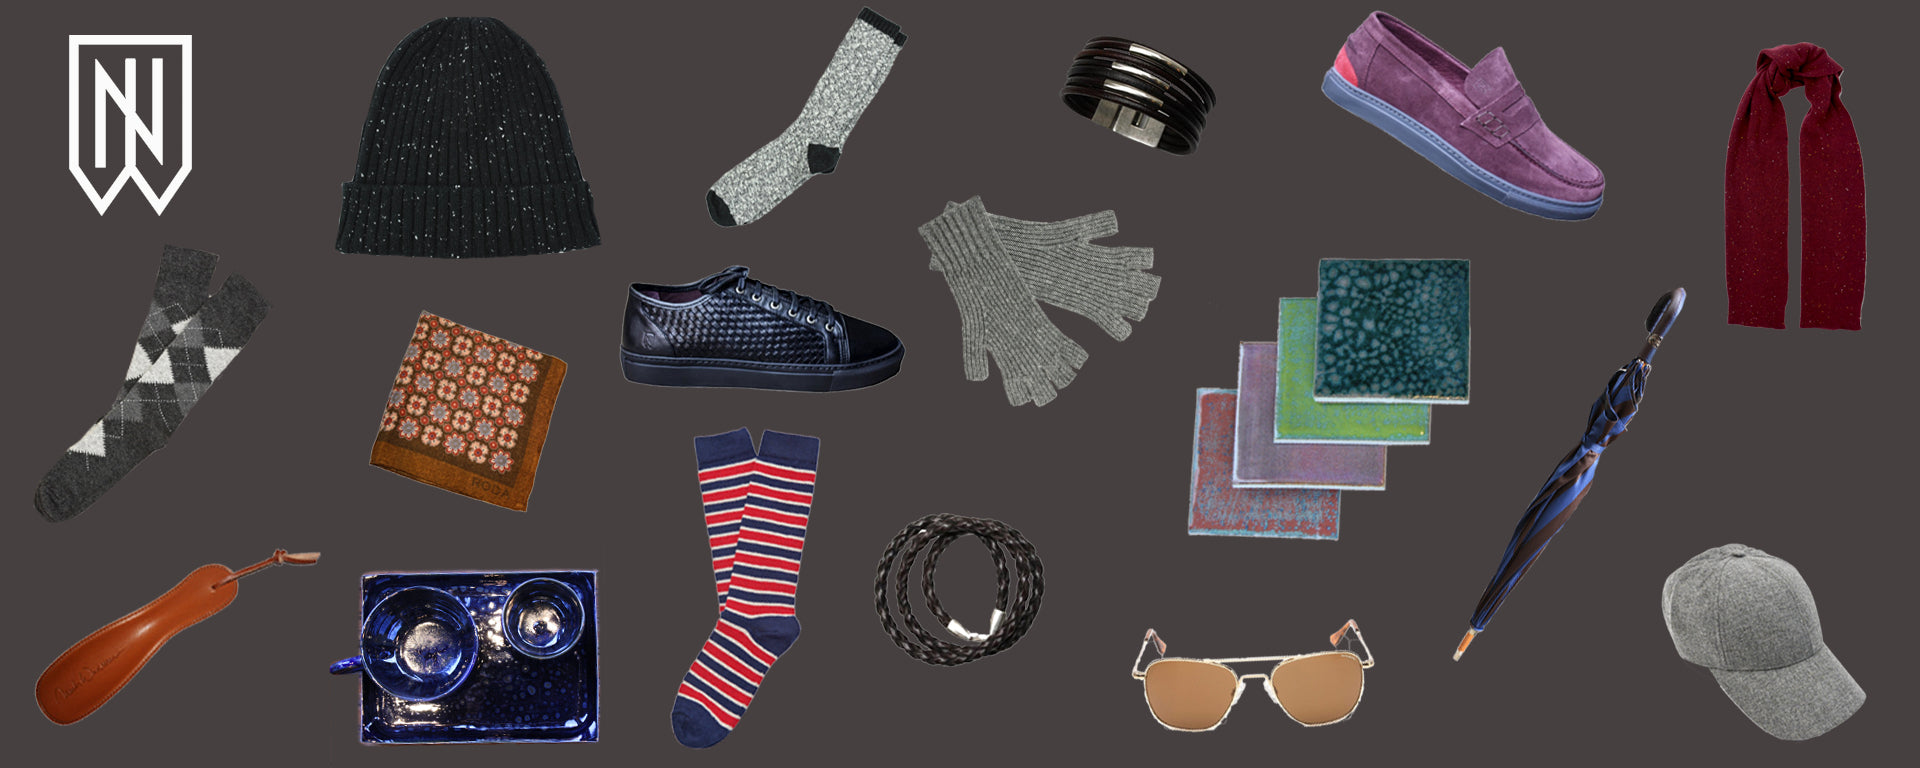 Noah Waxman Holiday Gift Guide